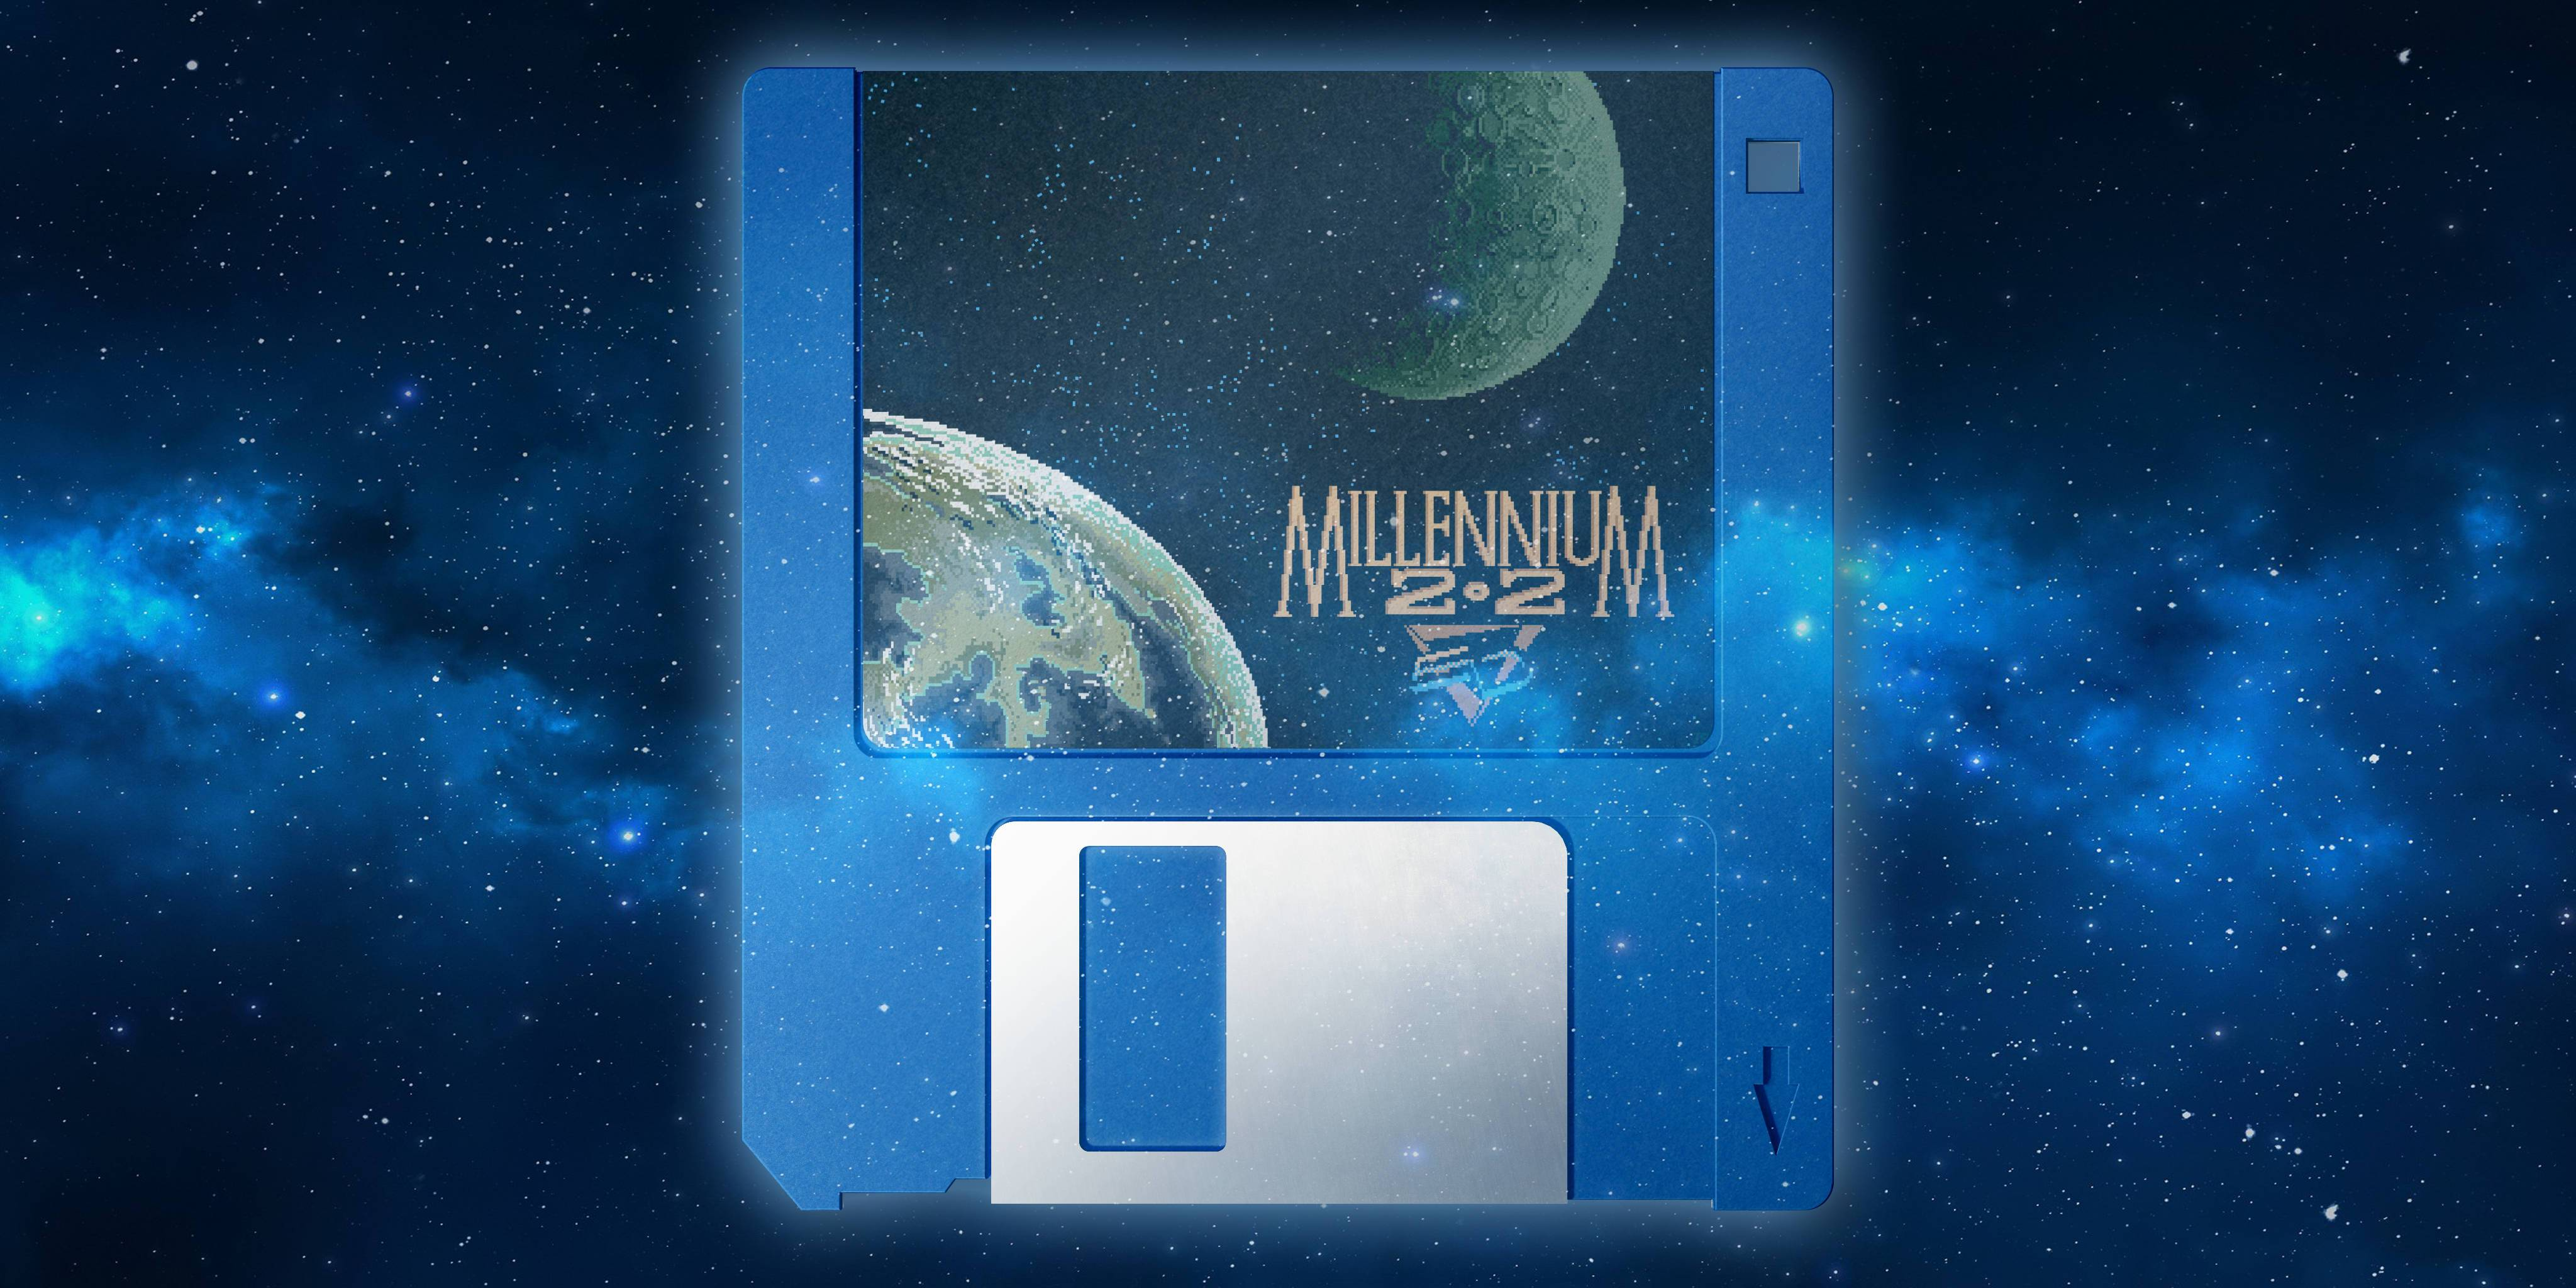 Millennium 2.2 (1989) from Electric Dreams Software<em>© Electric Dreams Software, modified by Krischan</em>